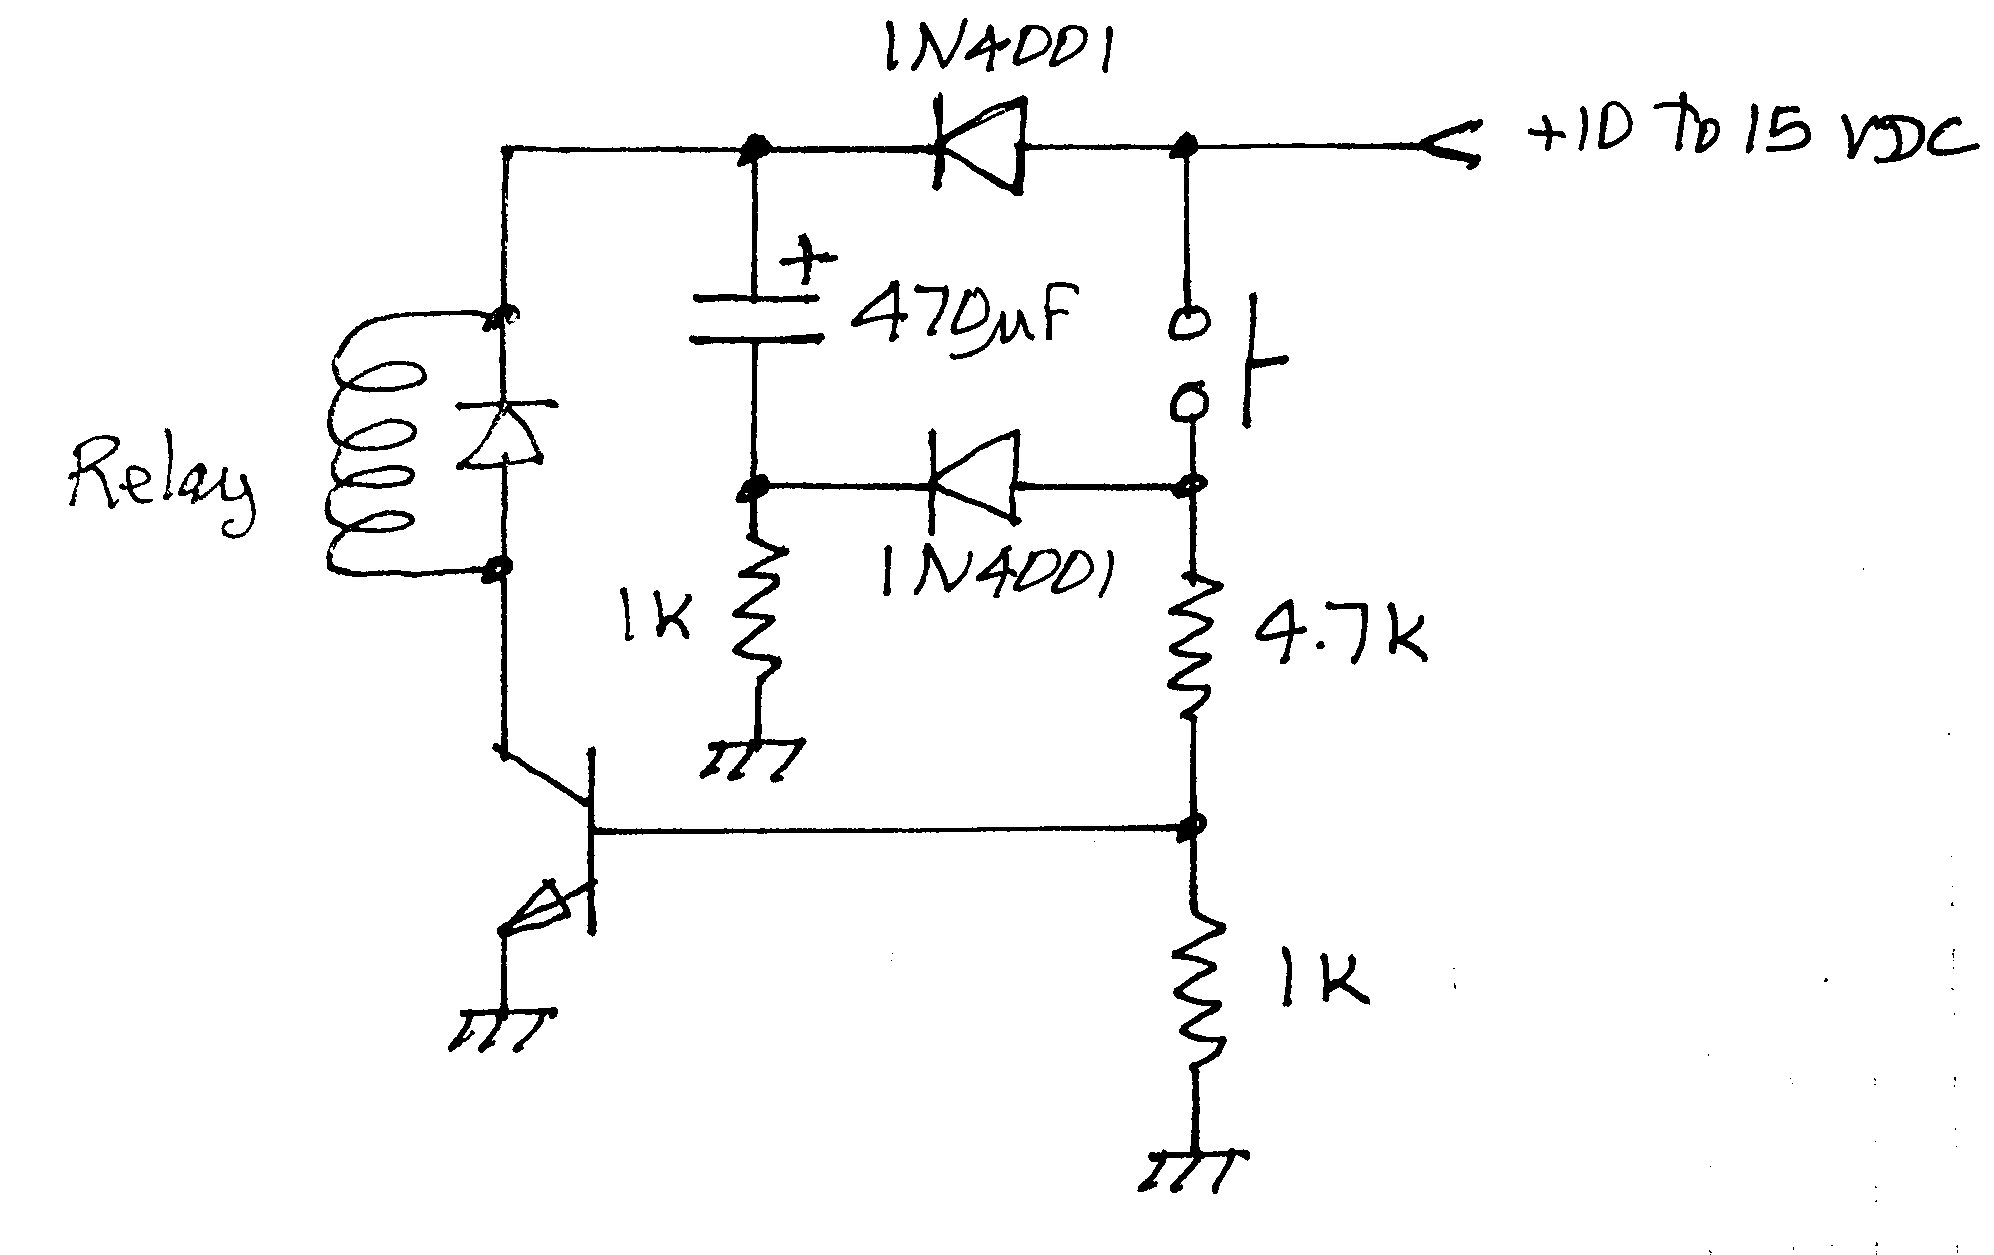 hight resolution of how to operate 24v relays from 12v ko4bbhow to operate 24v relays from 12v